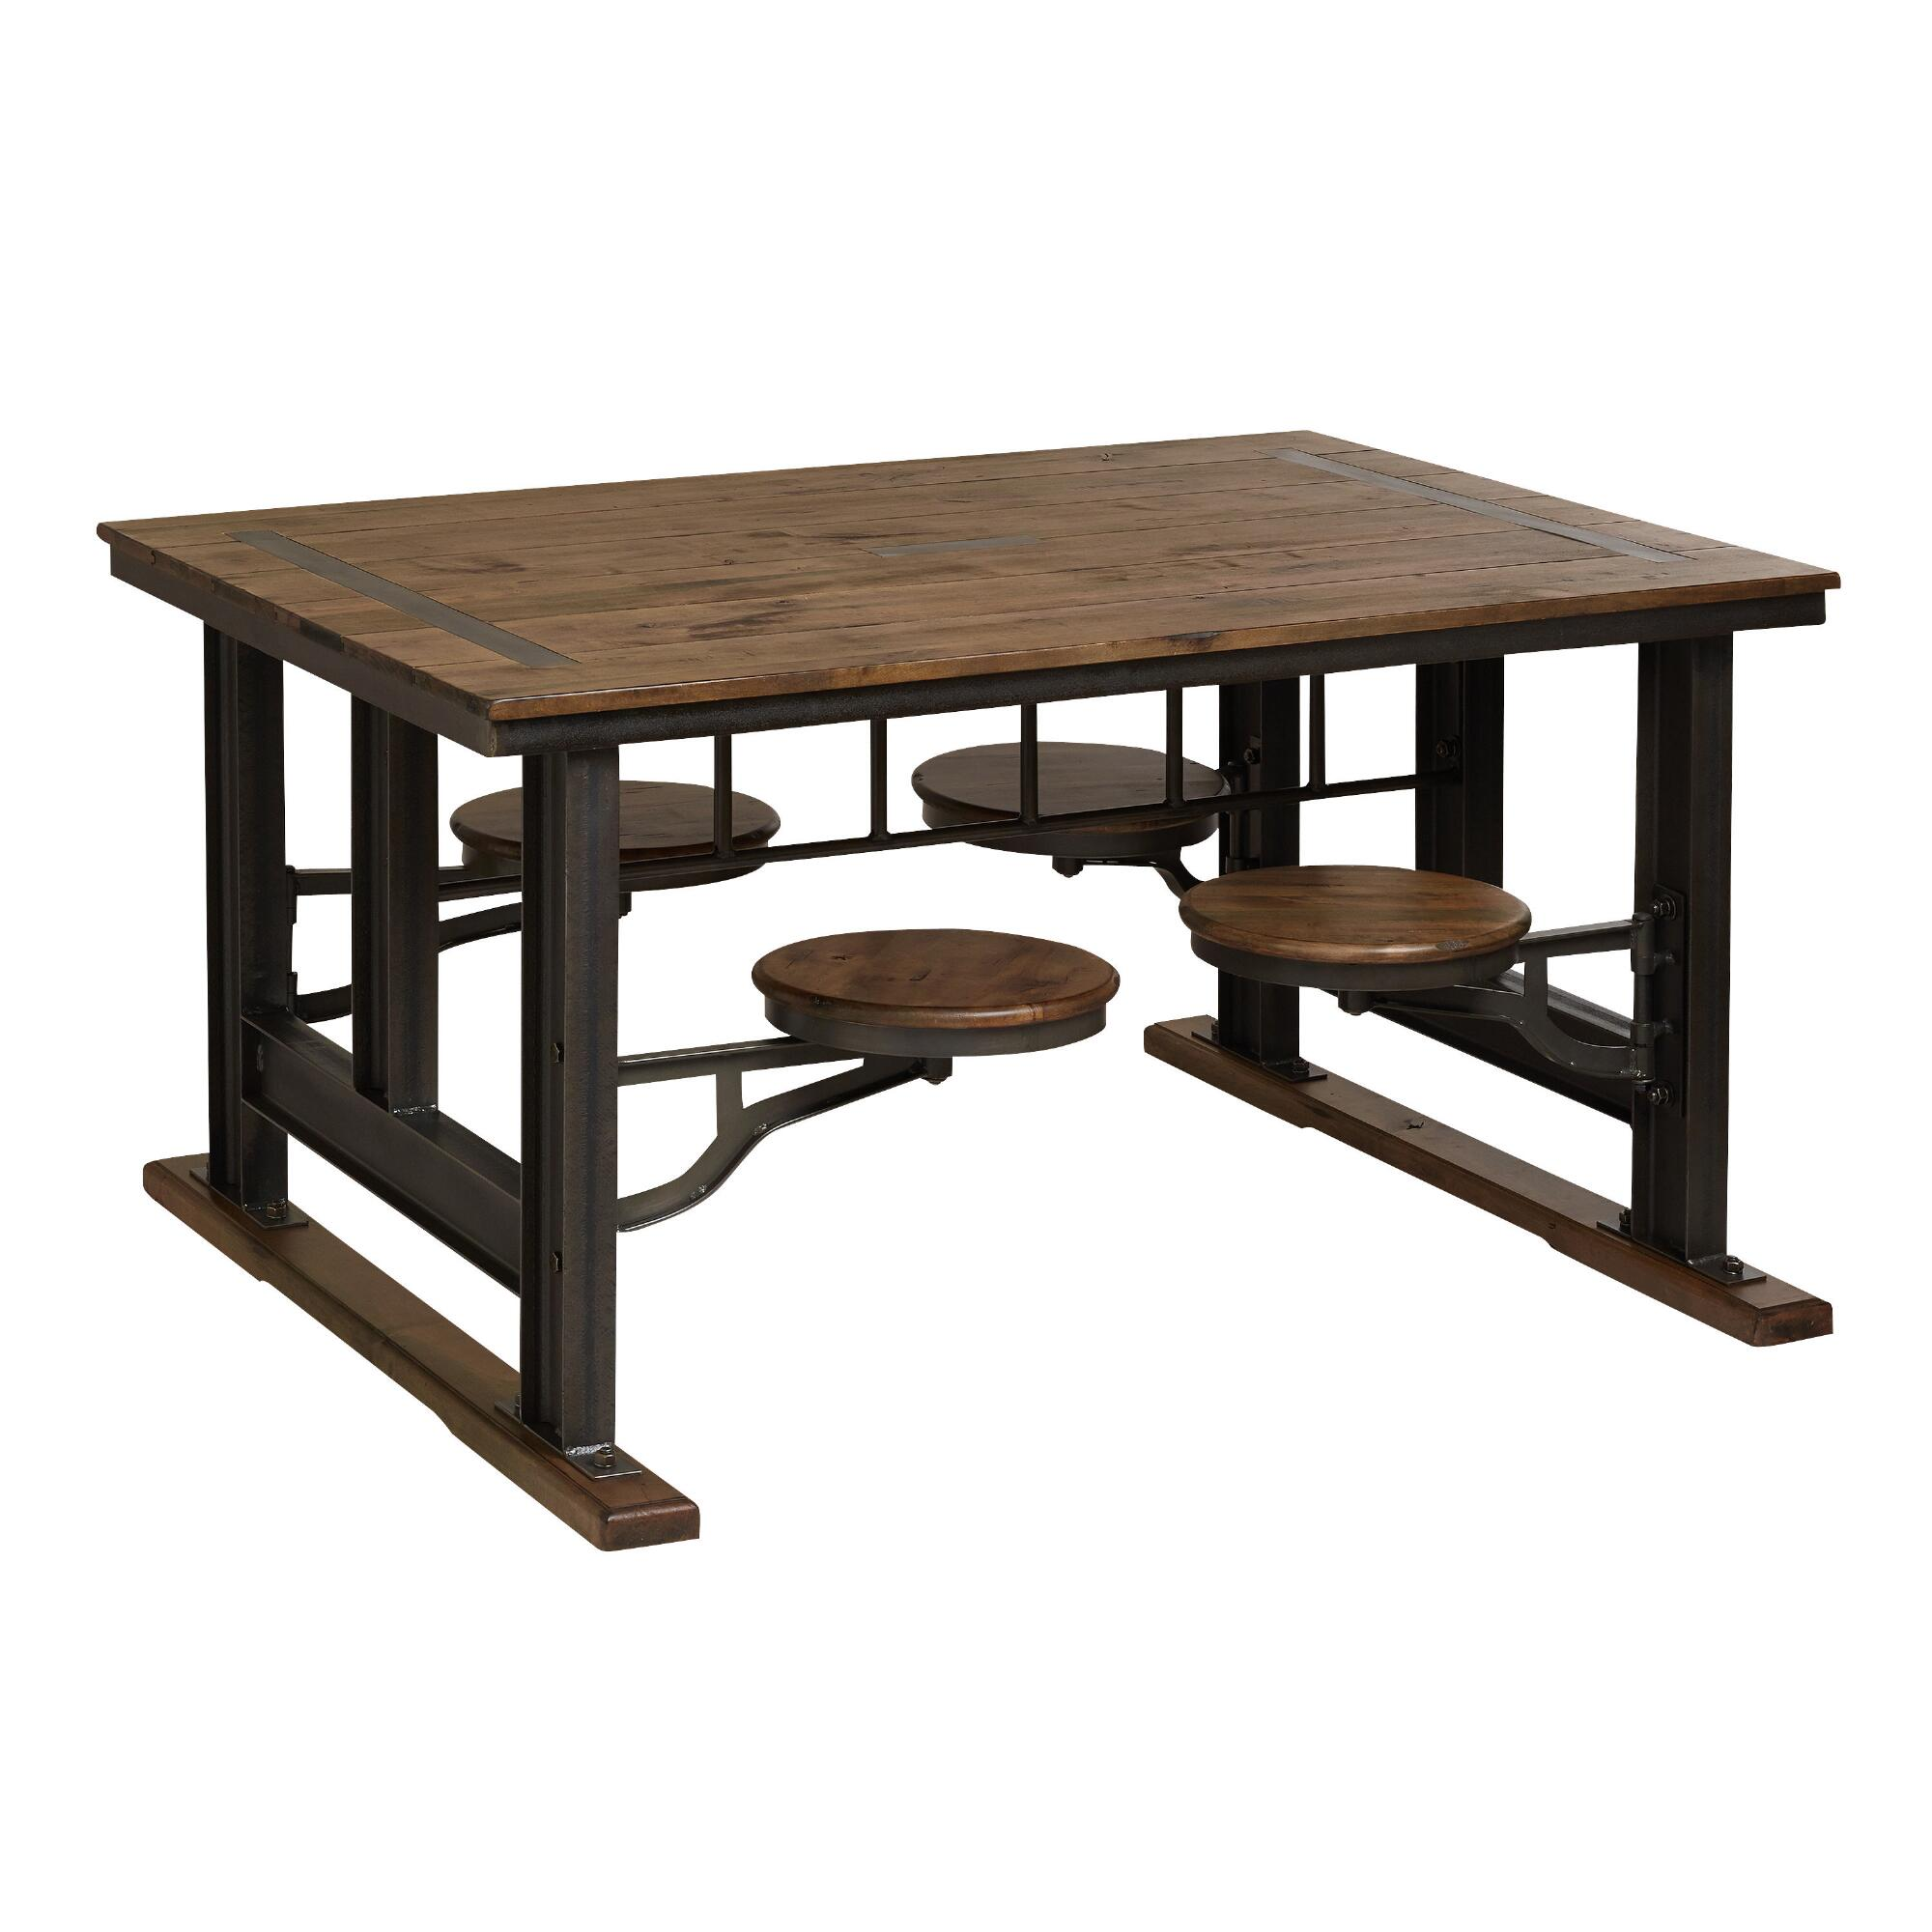 d9b8c133d51 Galvin Cafeteria Table